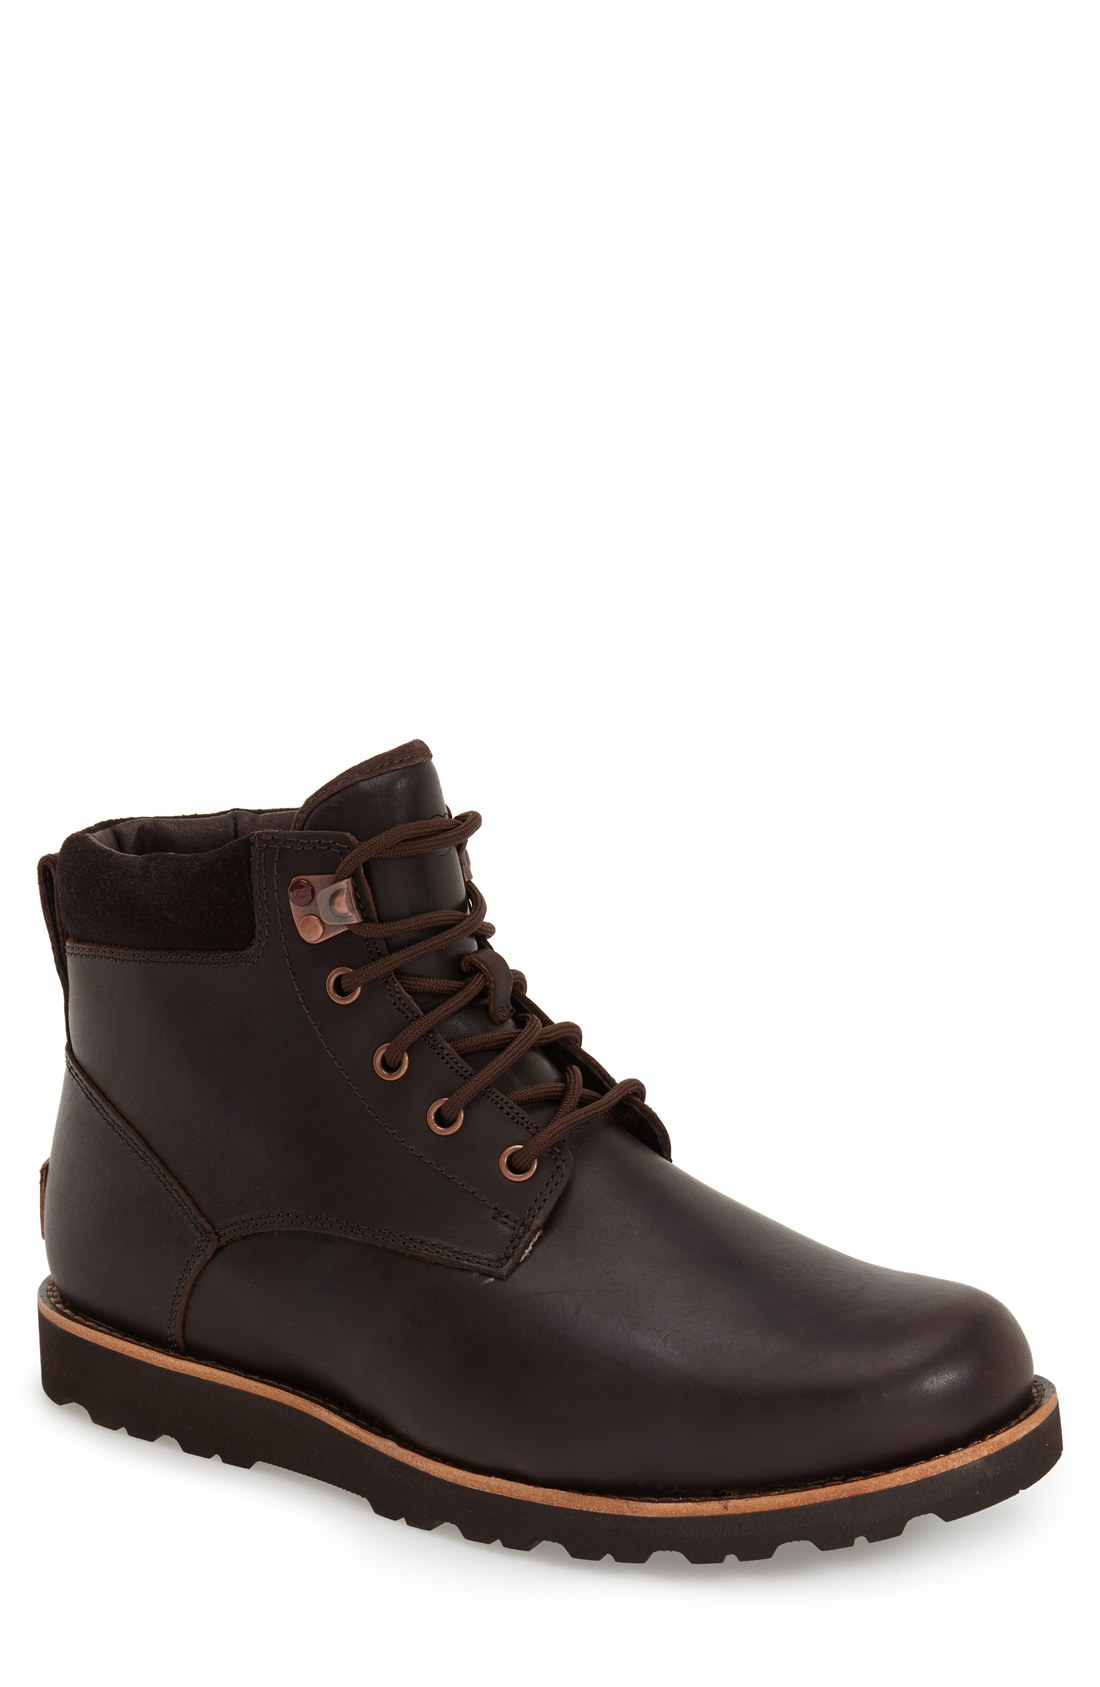 Stylish Boots For Men NU8iadJx